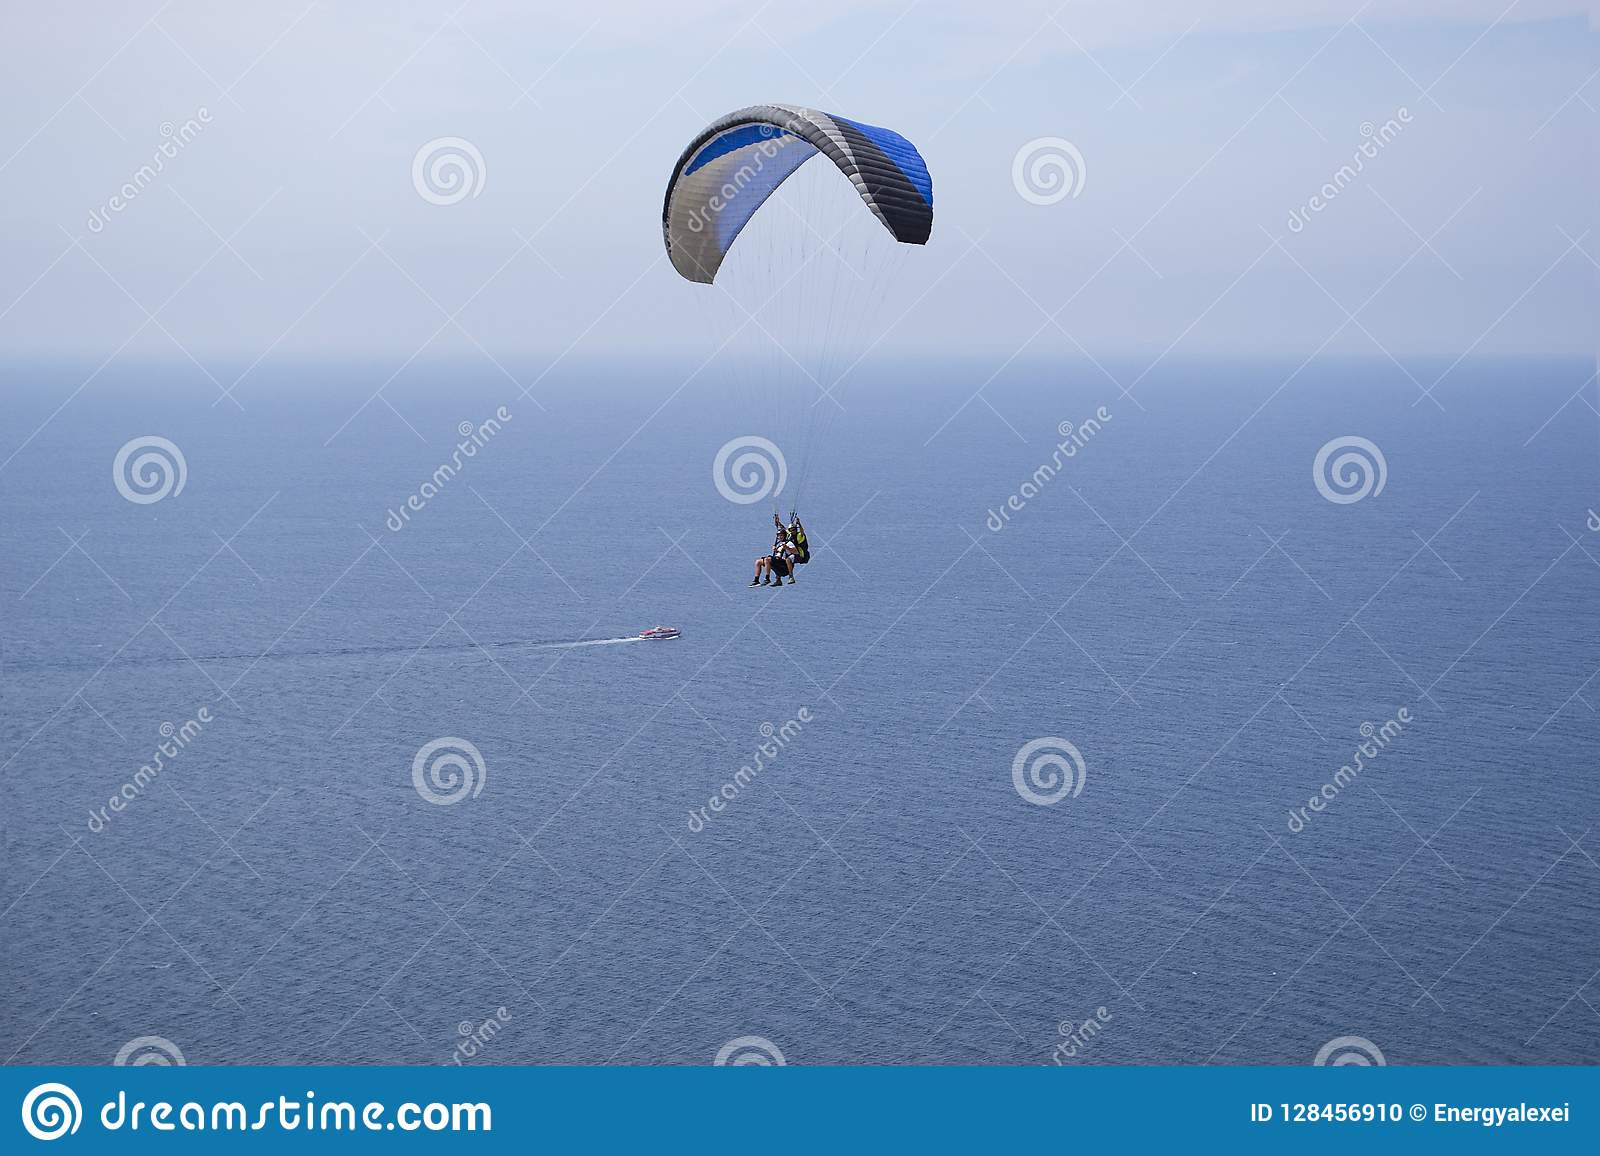 Paraglider, Sea, Sky, Pilot, Gliding Stock Photo - Image of leisure